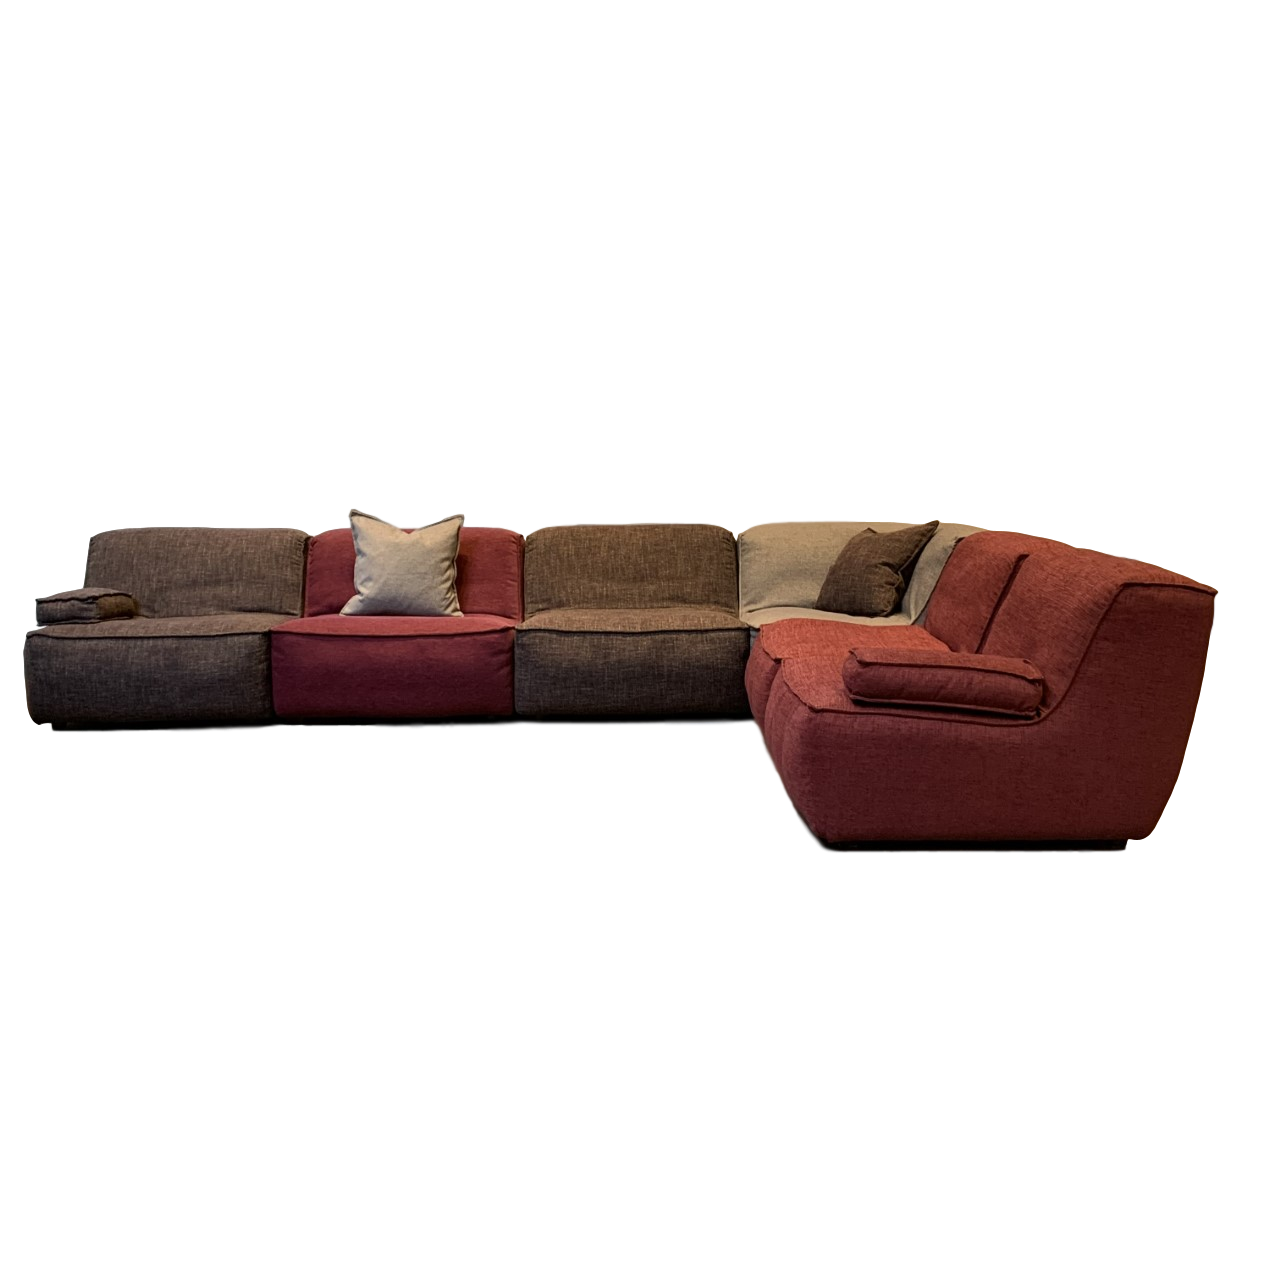 luxury furniture stores calgary sofas armchairs vega sofa prianera luxuries of europe